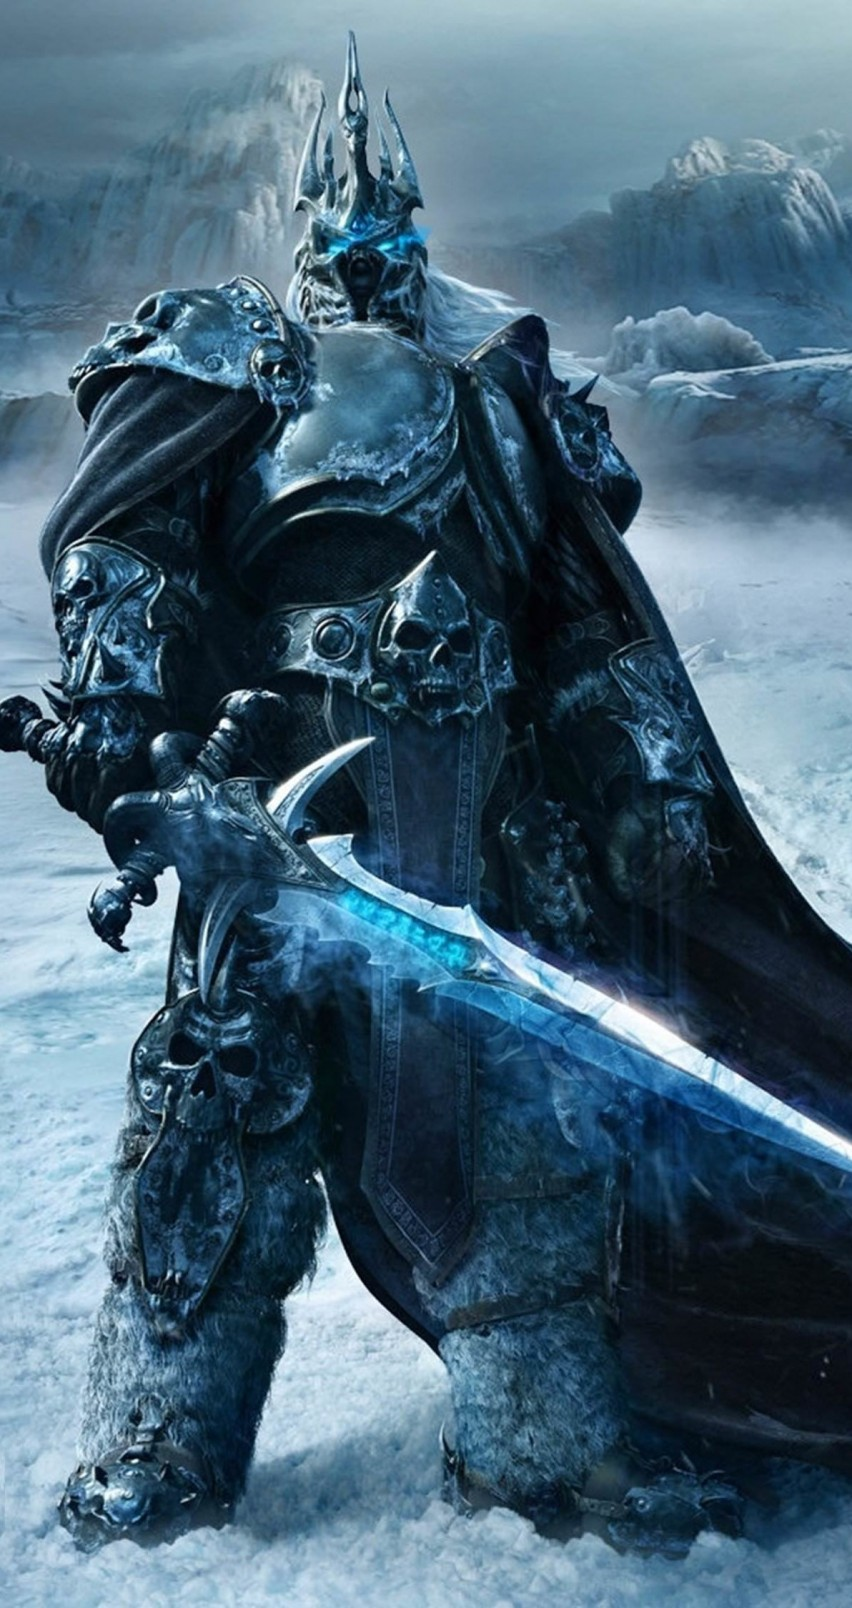 World of Warcraft: Wrath of the Lich King Wallpaper for Apple iPhone 6 / 6s